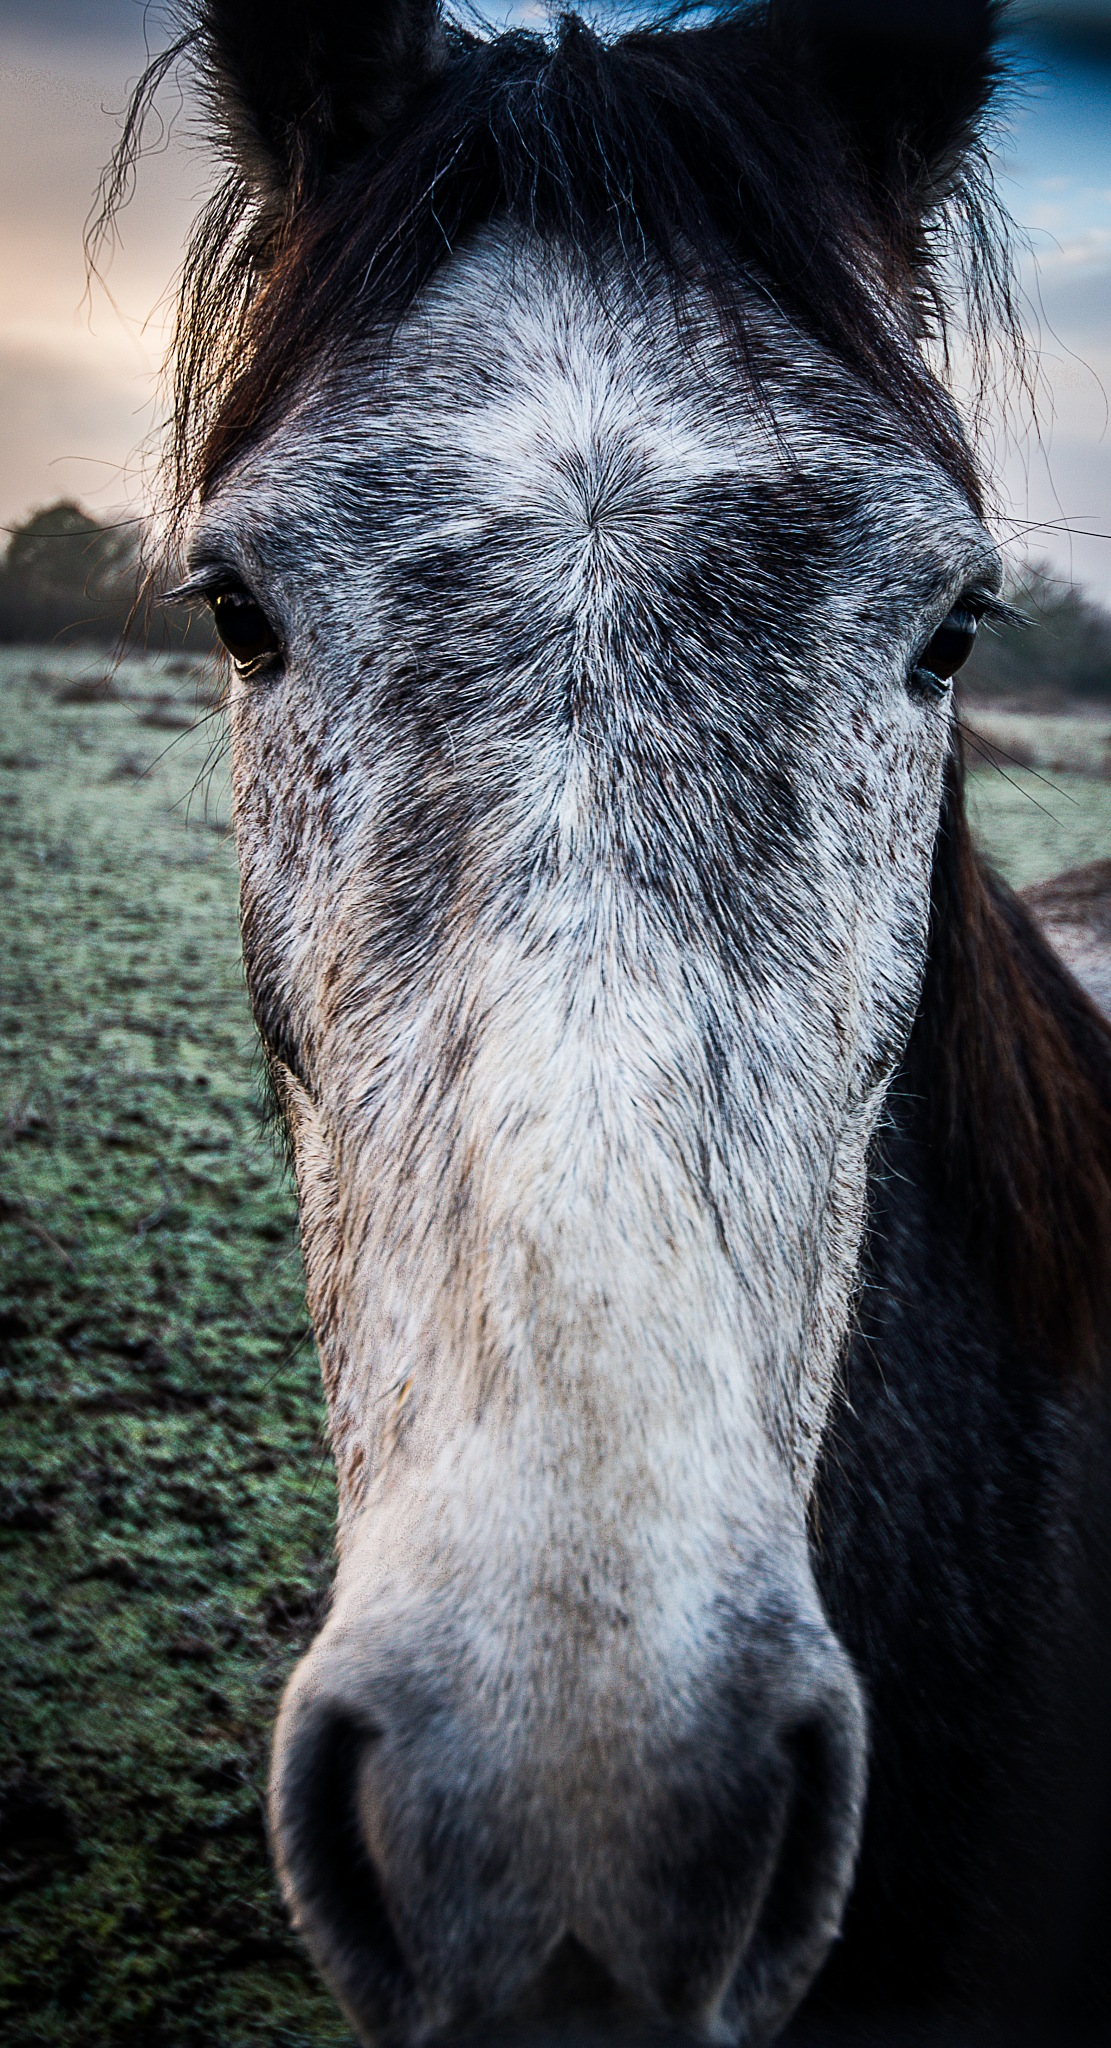 Long faced by MarkGray